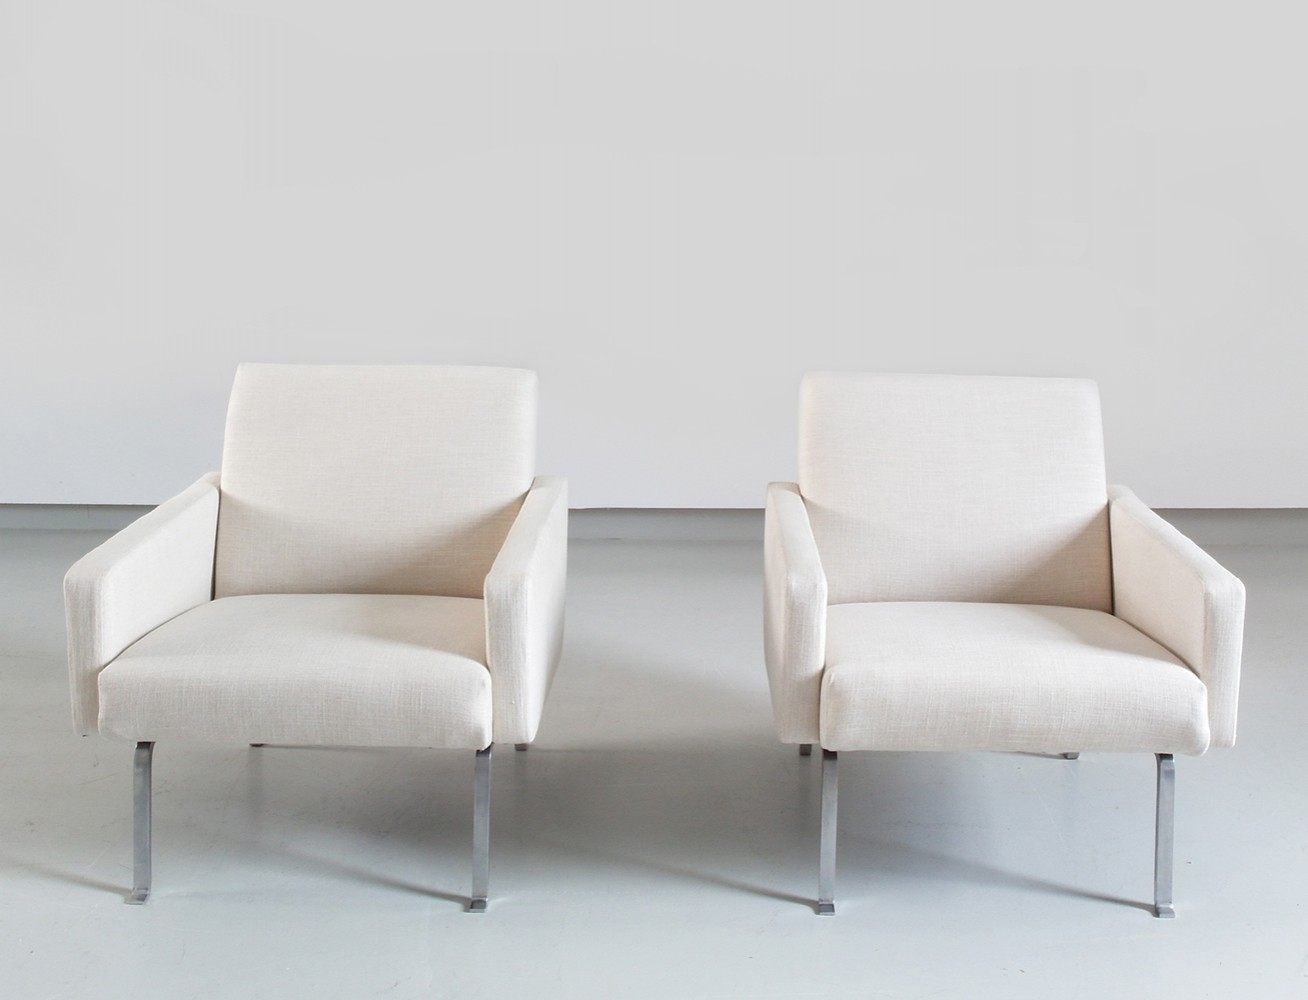 Pair of Geoffrey D Harcourt Lounge Chairs Model 461 for Artifort, The Netherlands 1955